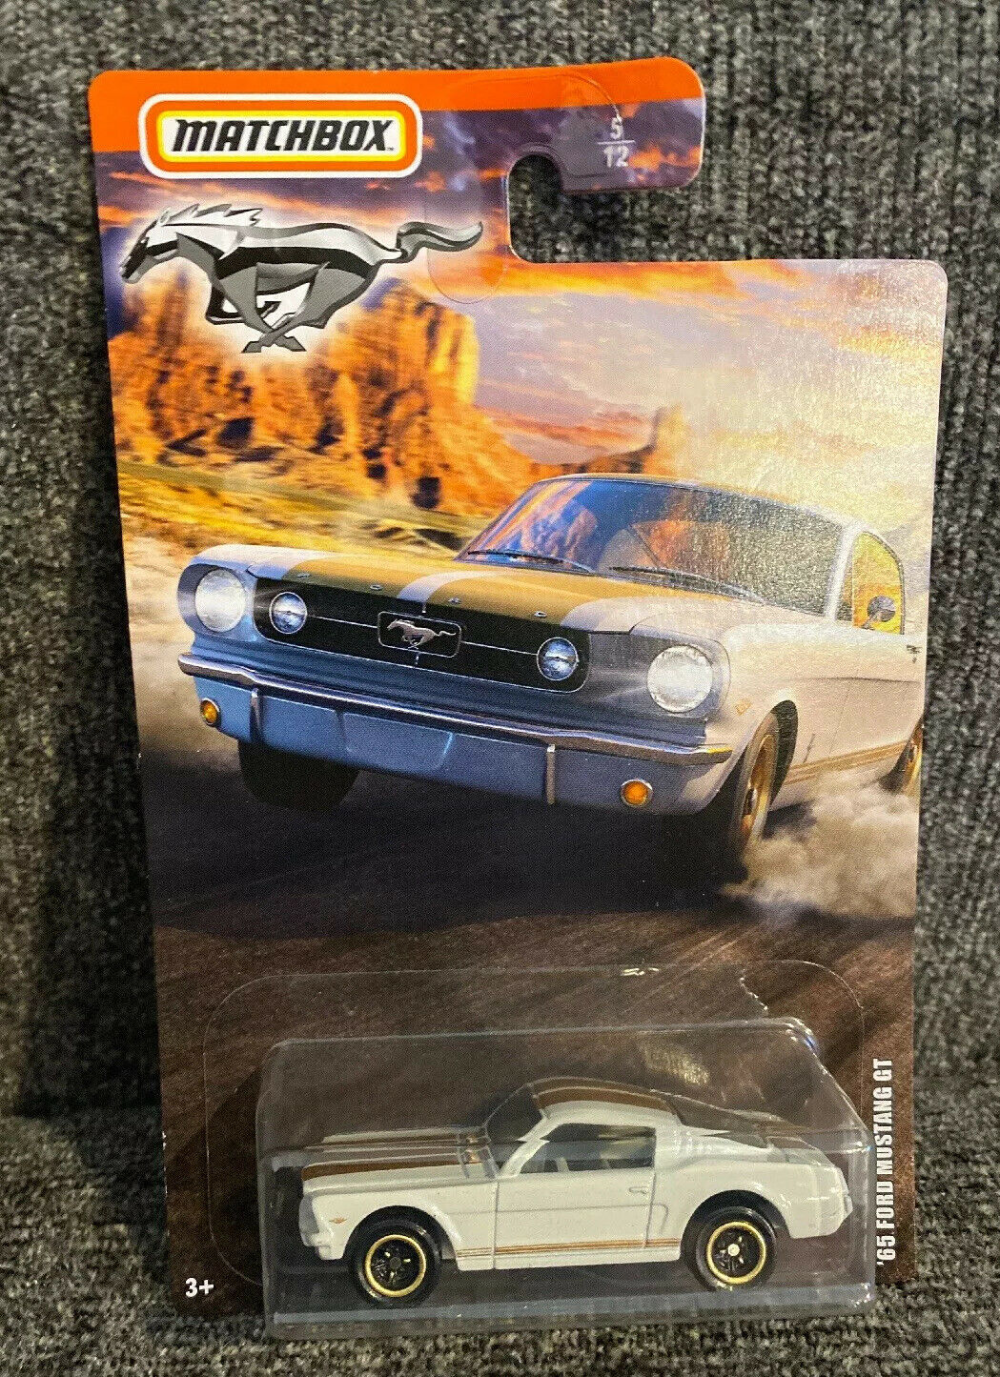 Details about 2020 MATCHBOX MBX MUSTANG '65 FORD MUSTANG